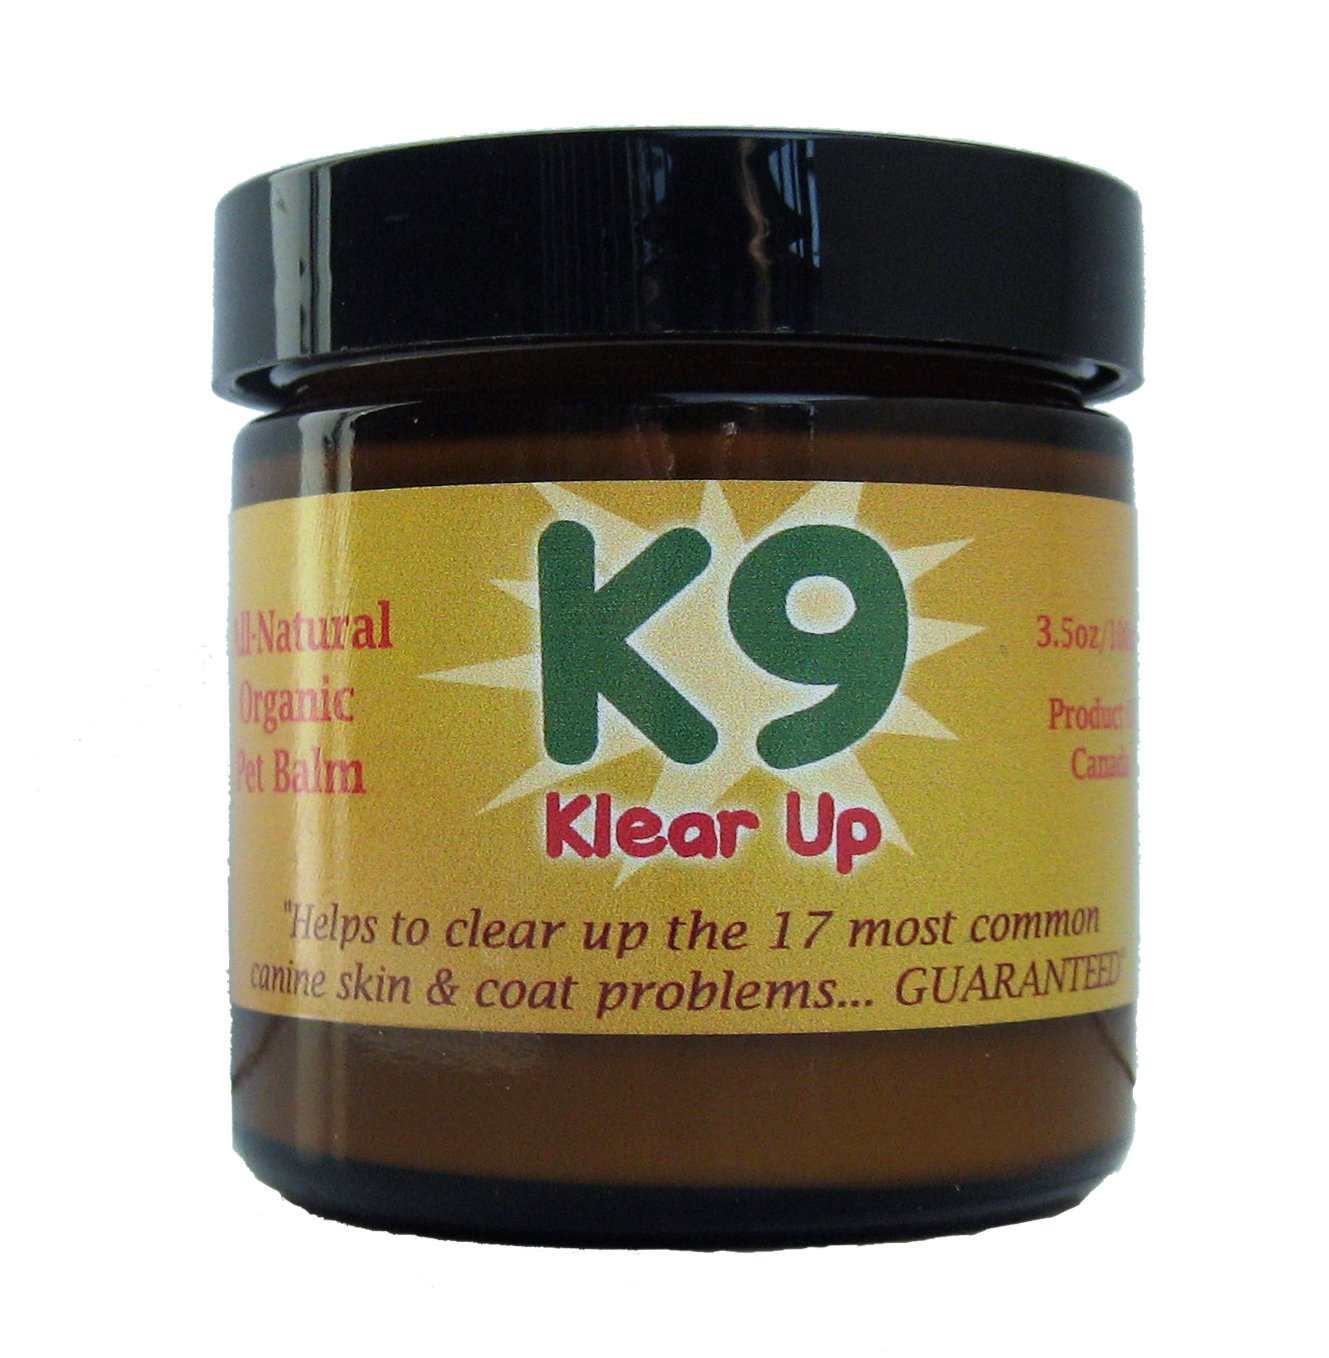 K9 KlearUp - Mayan Pet Skin Cream with Tepezcohuite (from ''Skin Tree'') - anti-fungal, anti-bacterial, cell regenerating - cures hot spots, rashes, eczema, and more... - 100% money back guarantee! Nothing to lose but your pet's skin issues!